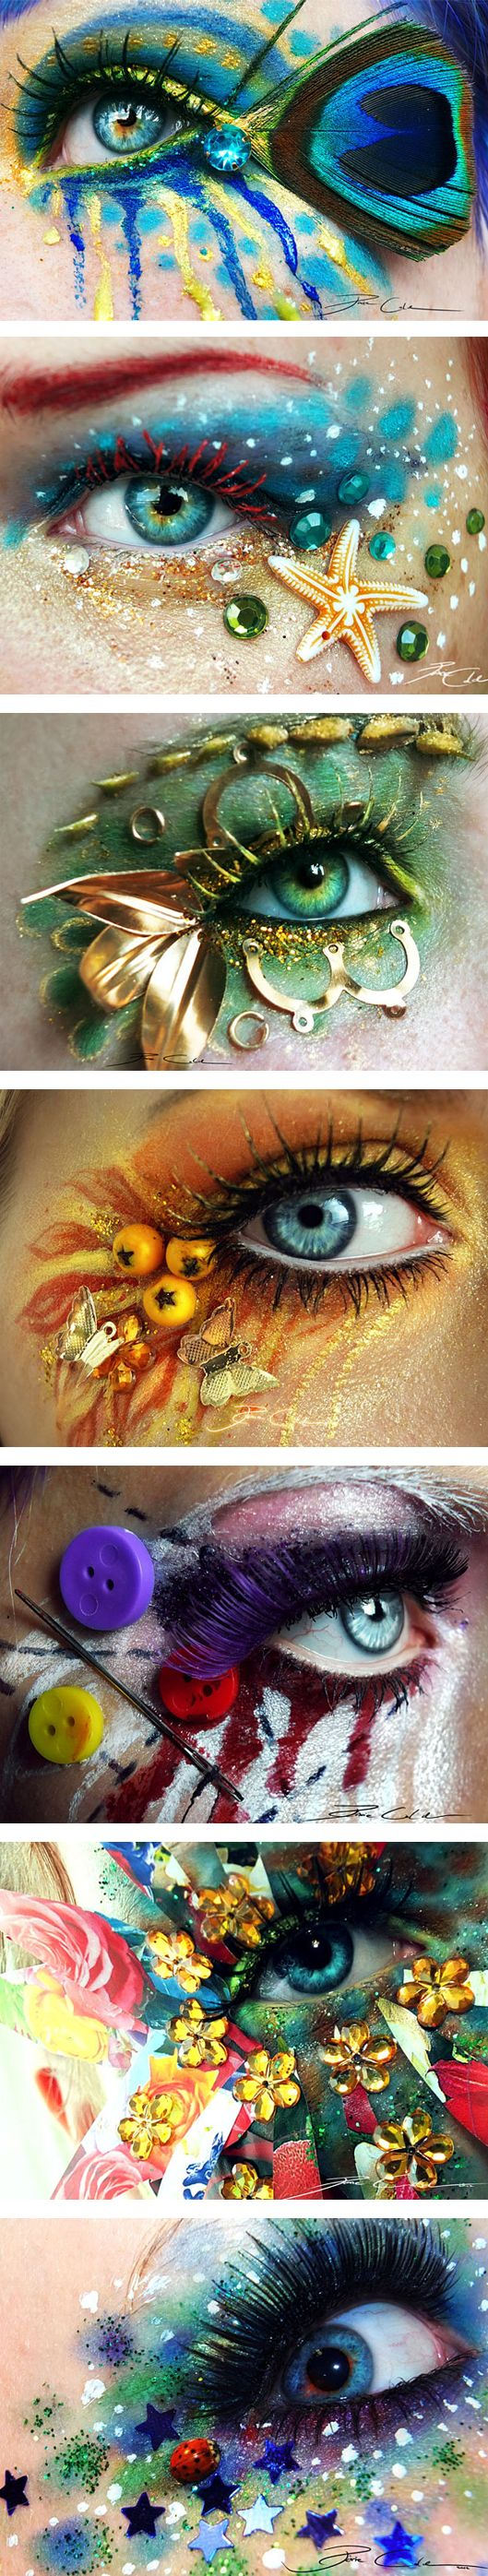 Stunning Eye Make-Up Art! Can't get over how awesome these are!